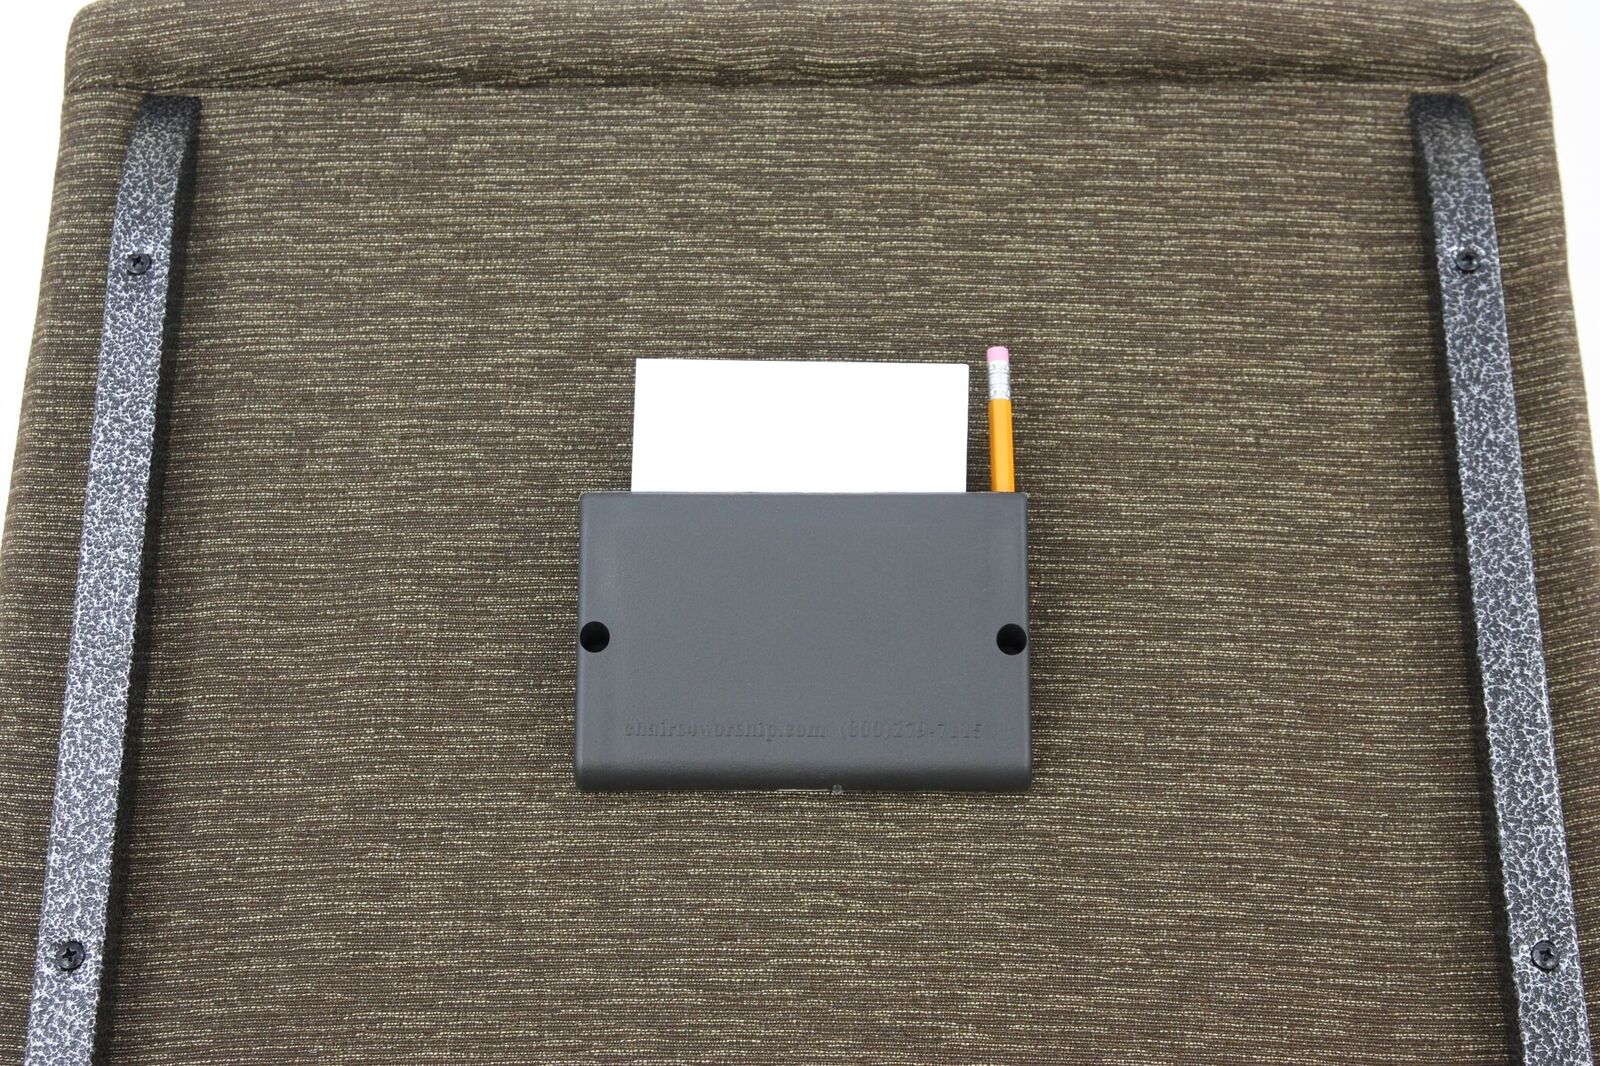 Card Amp Pencil Holders For Church Chairs ‑ Chairsforworship